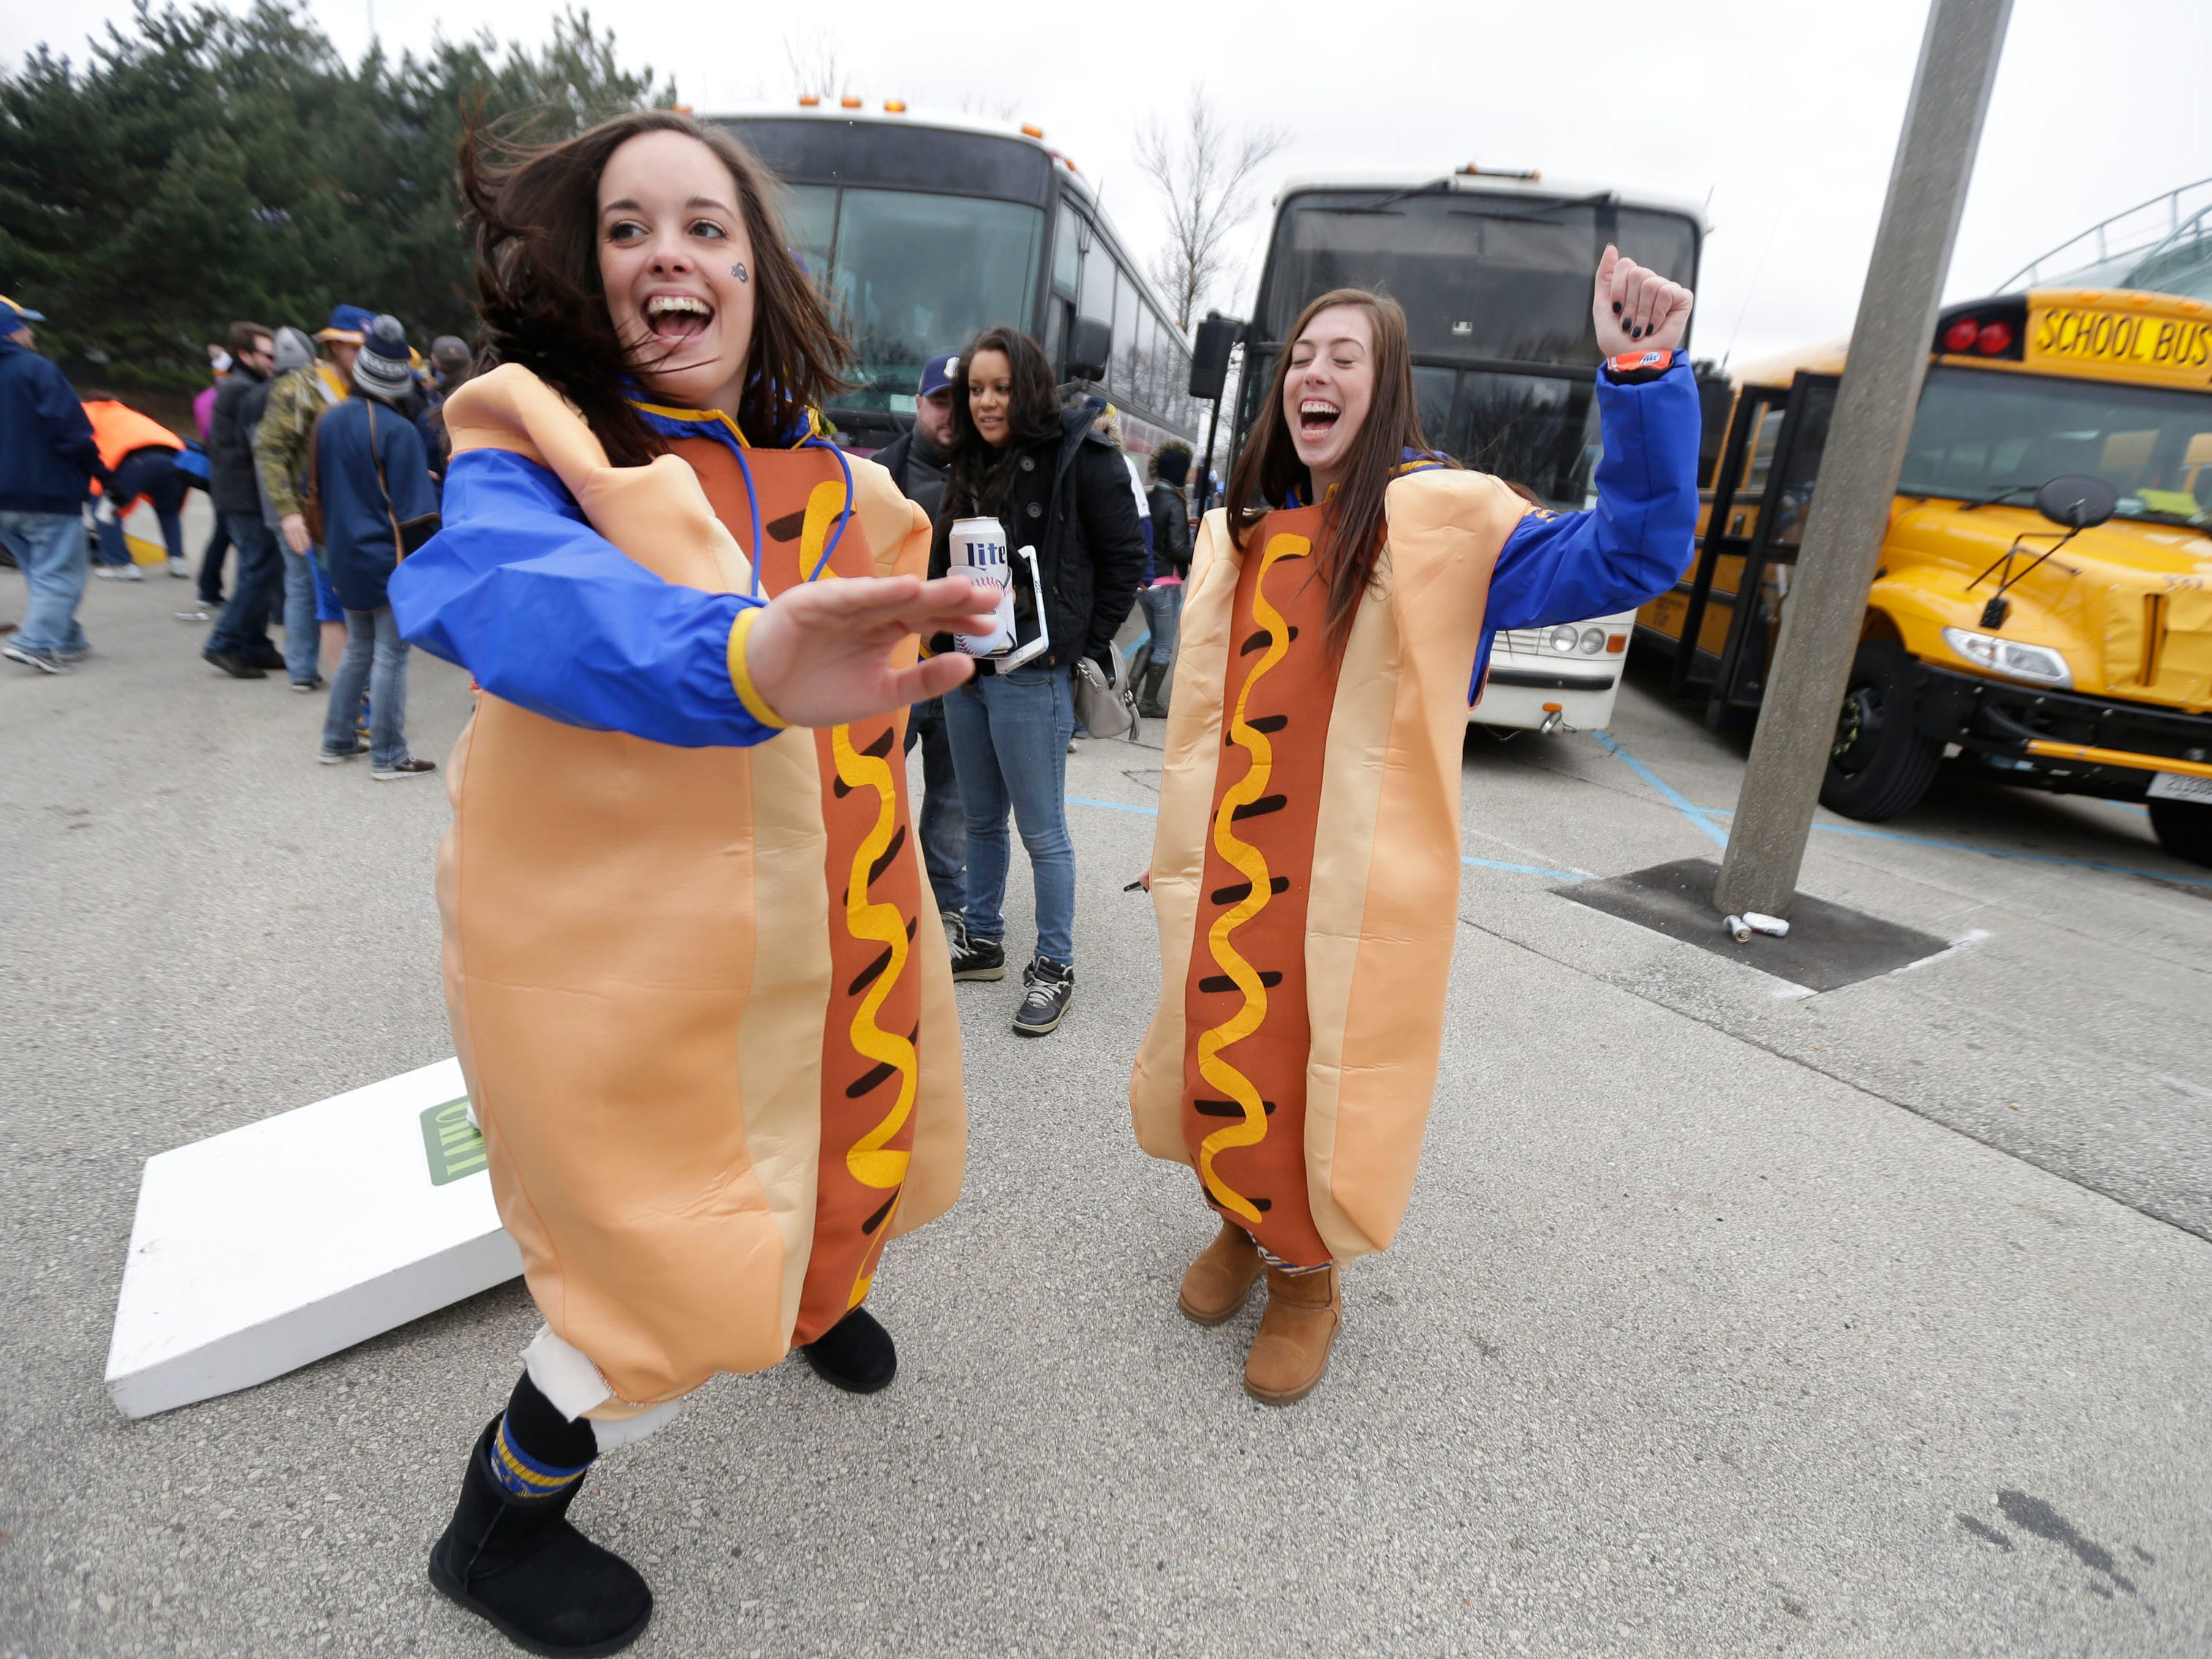 Brittany Hannes (left) and her sister Brooke Hannes get their hot dogs on before the Milwaukee Brewers faced the San Francisco Giants for the home opener at Miller Park on April 4, 2016. The Brewers lost, 12-3.